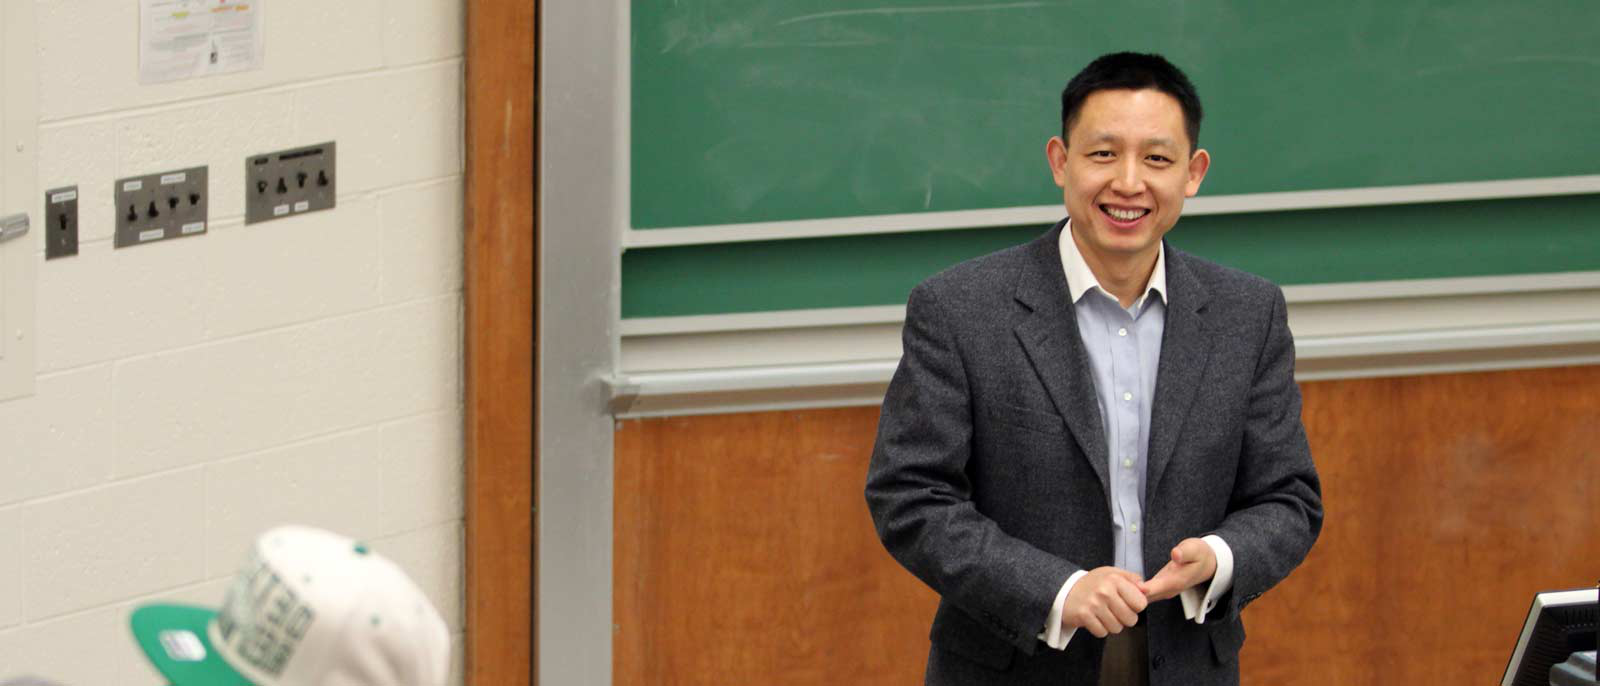 AIS faculty members Xuefeng Jiang smiles as he stands at front of classroom, during an accounting course at MSU.